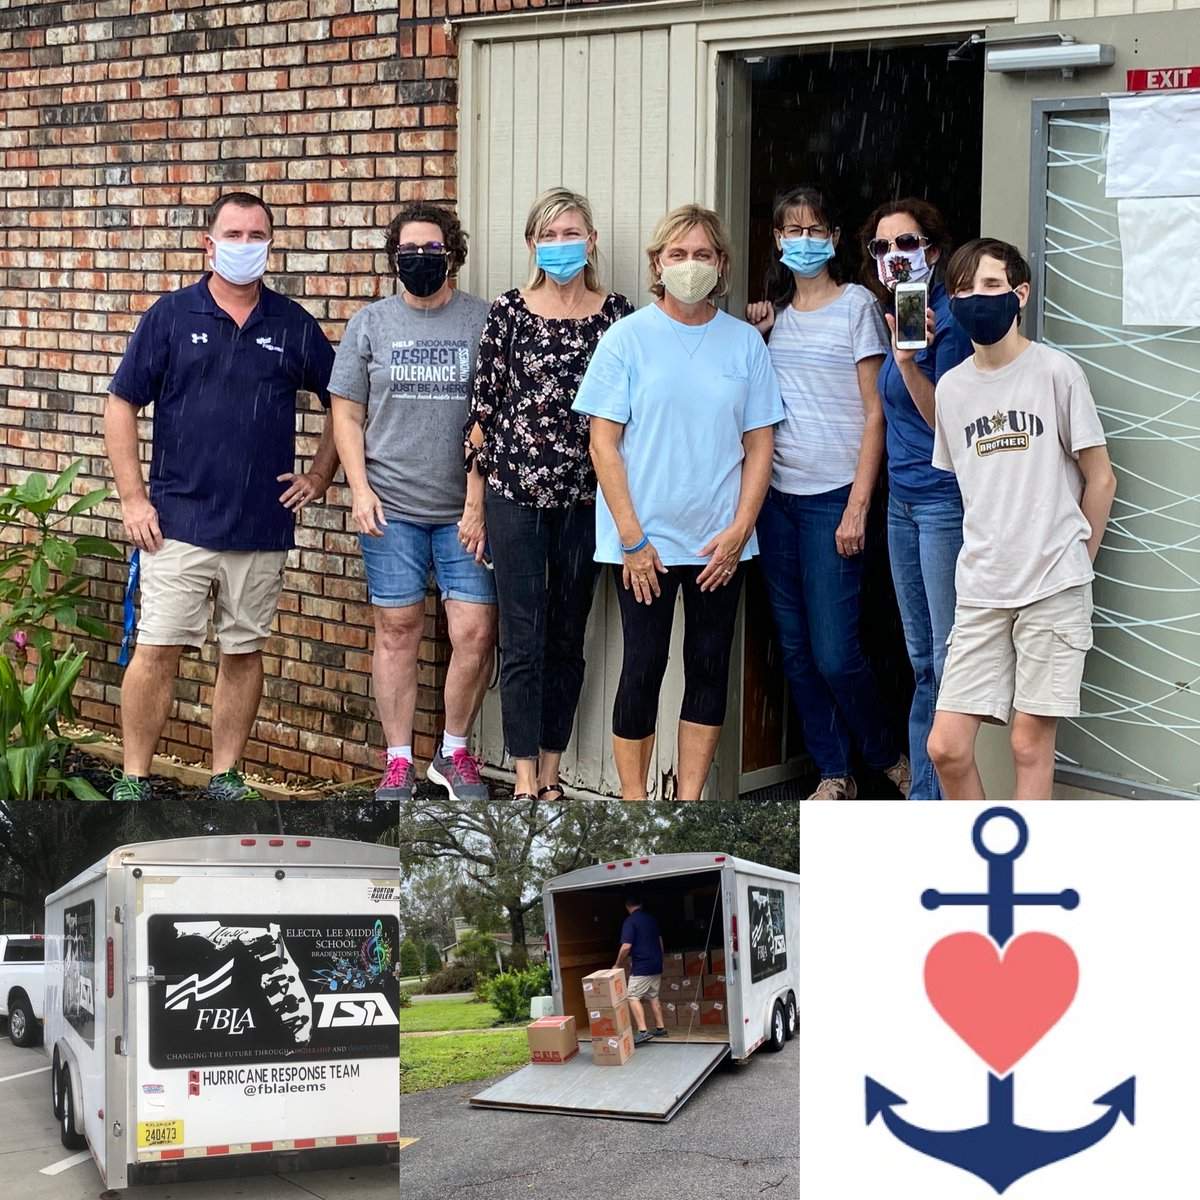 Lee Middle School's FBLA Donation Drive for survivors of Hurricane Sally was a success!   A trailer filled with essential items was delivered and distributed in Pensacola on Thursday.